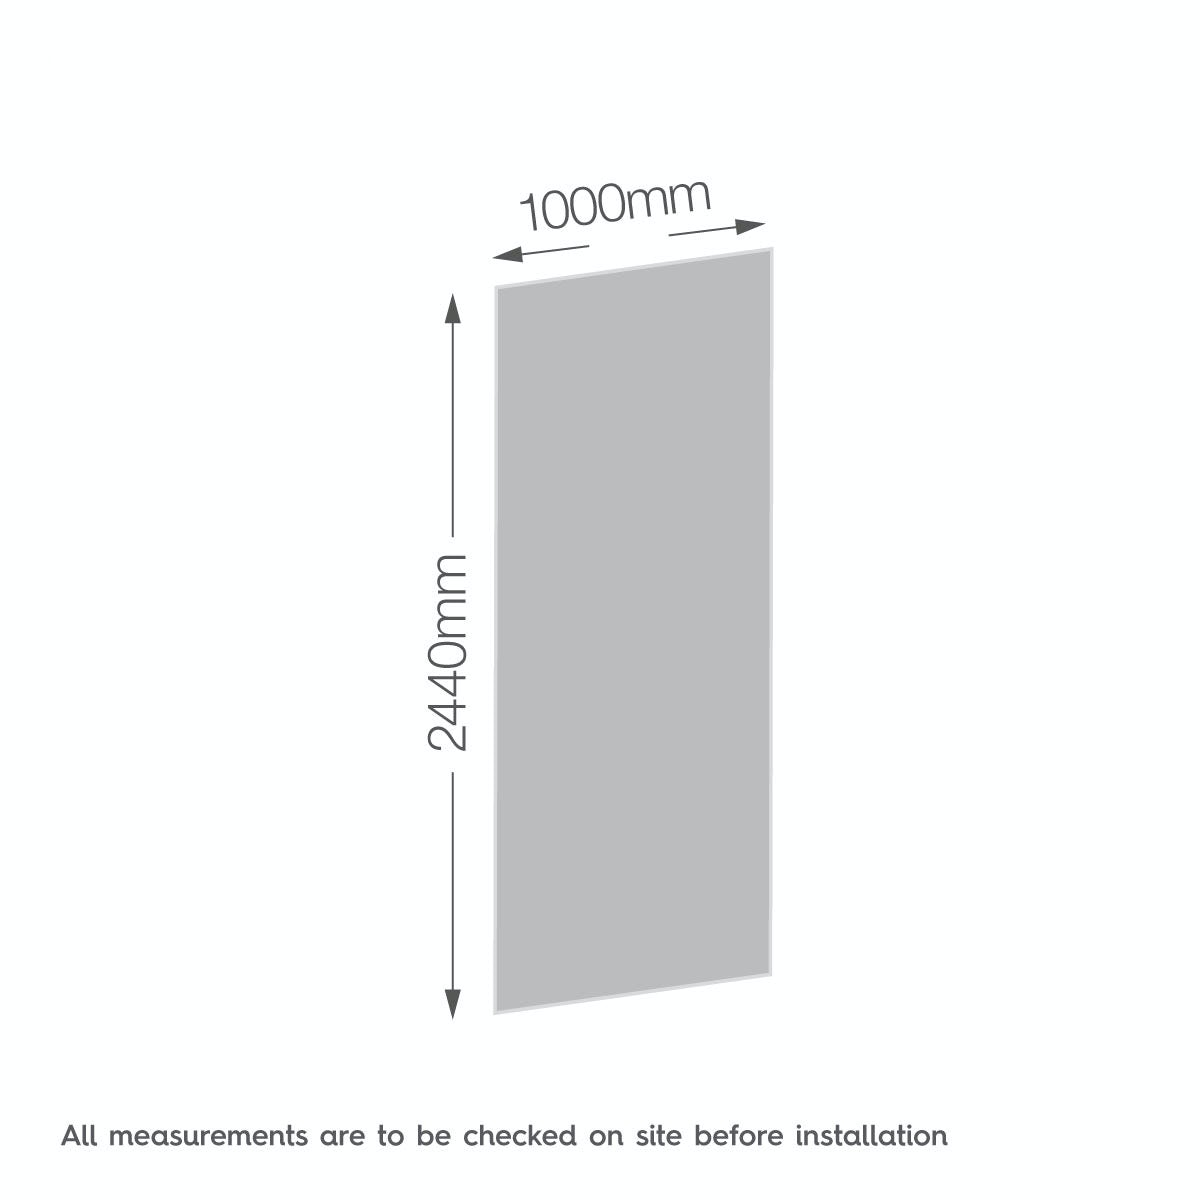 Dimensions for Zenolite plus ice acrylic shower wall panel 2440 x 1000